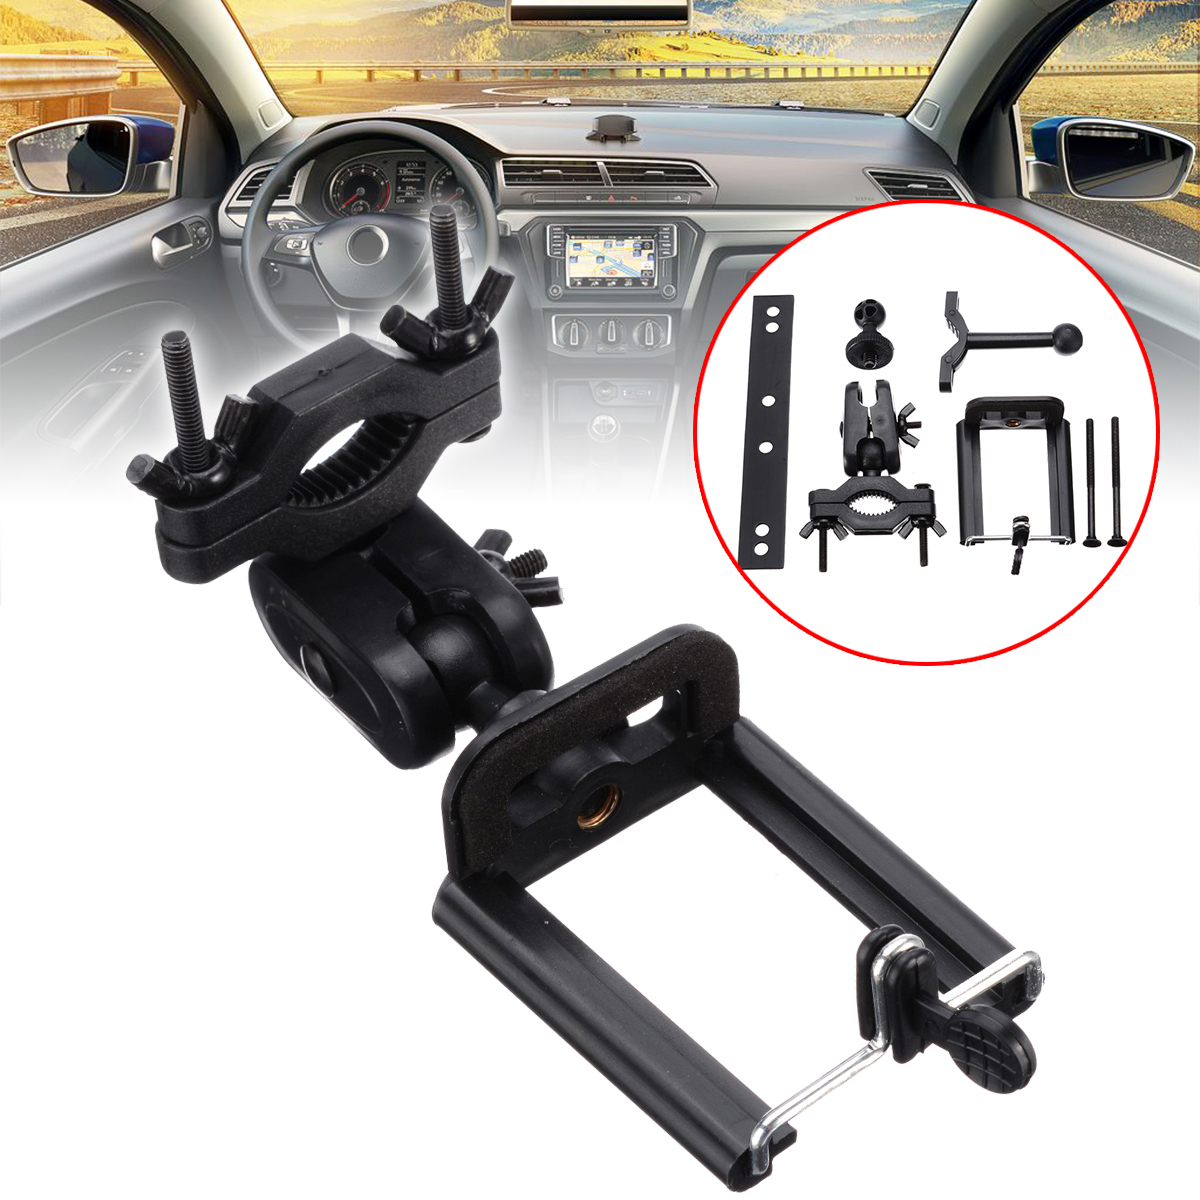 Universal 360 Degree Cell <font><b>Mobile</b></font> Smart <font><b>Phone</b></font> Support Stand Holder <font><b>Car</b></font> Rearview Mirror Mount Stand Holder Clip GPS <font><b>Accessories</b></font> image